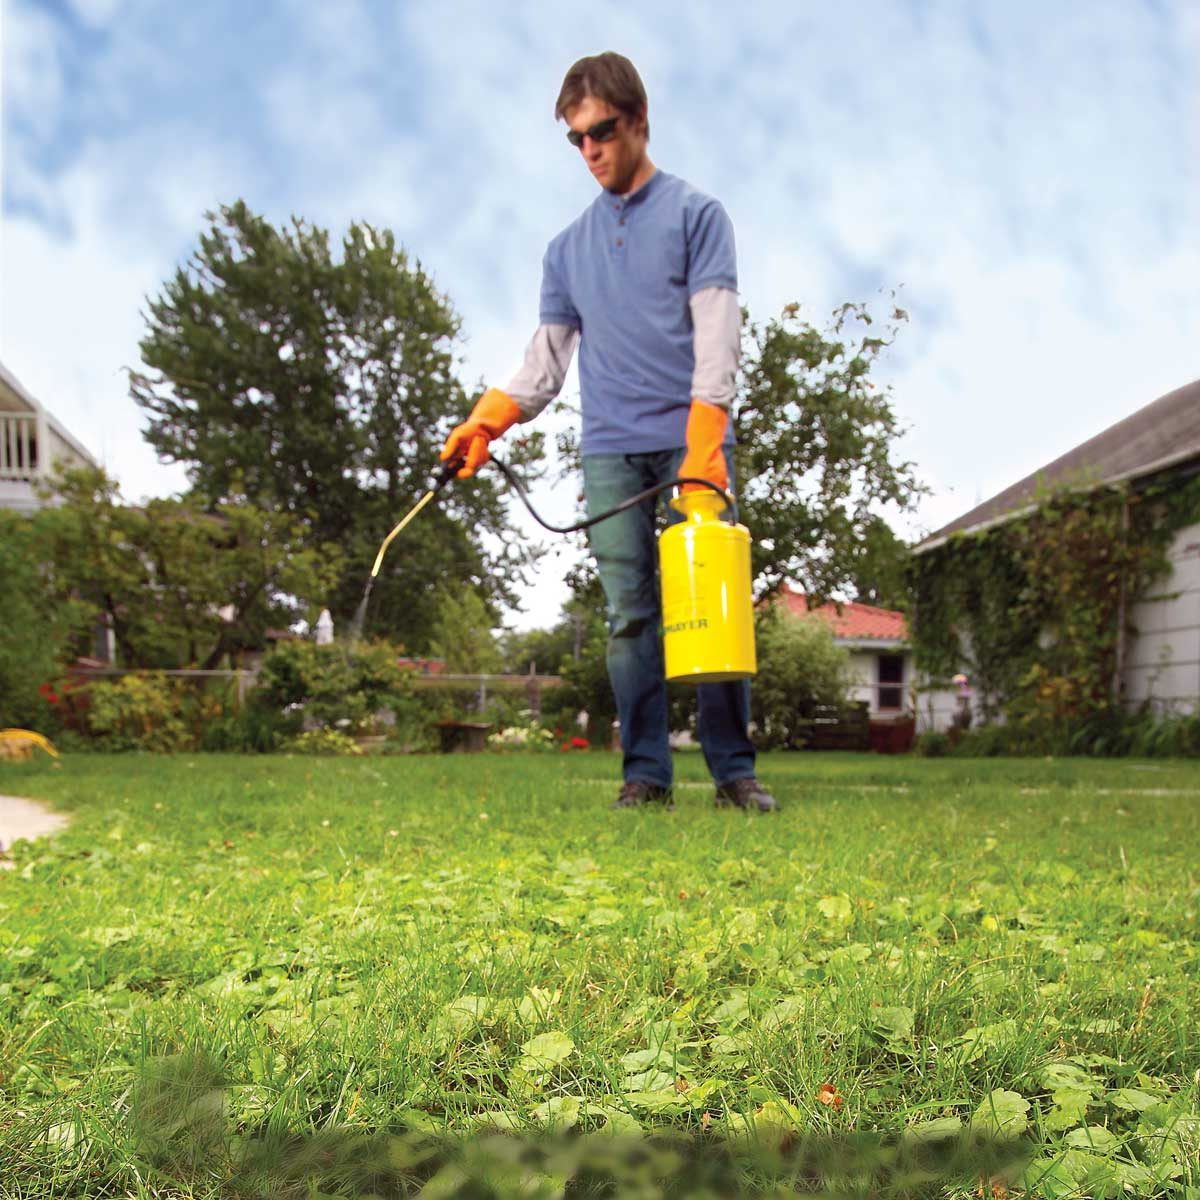 Spraying weeds